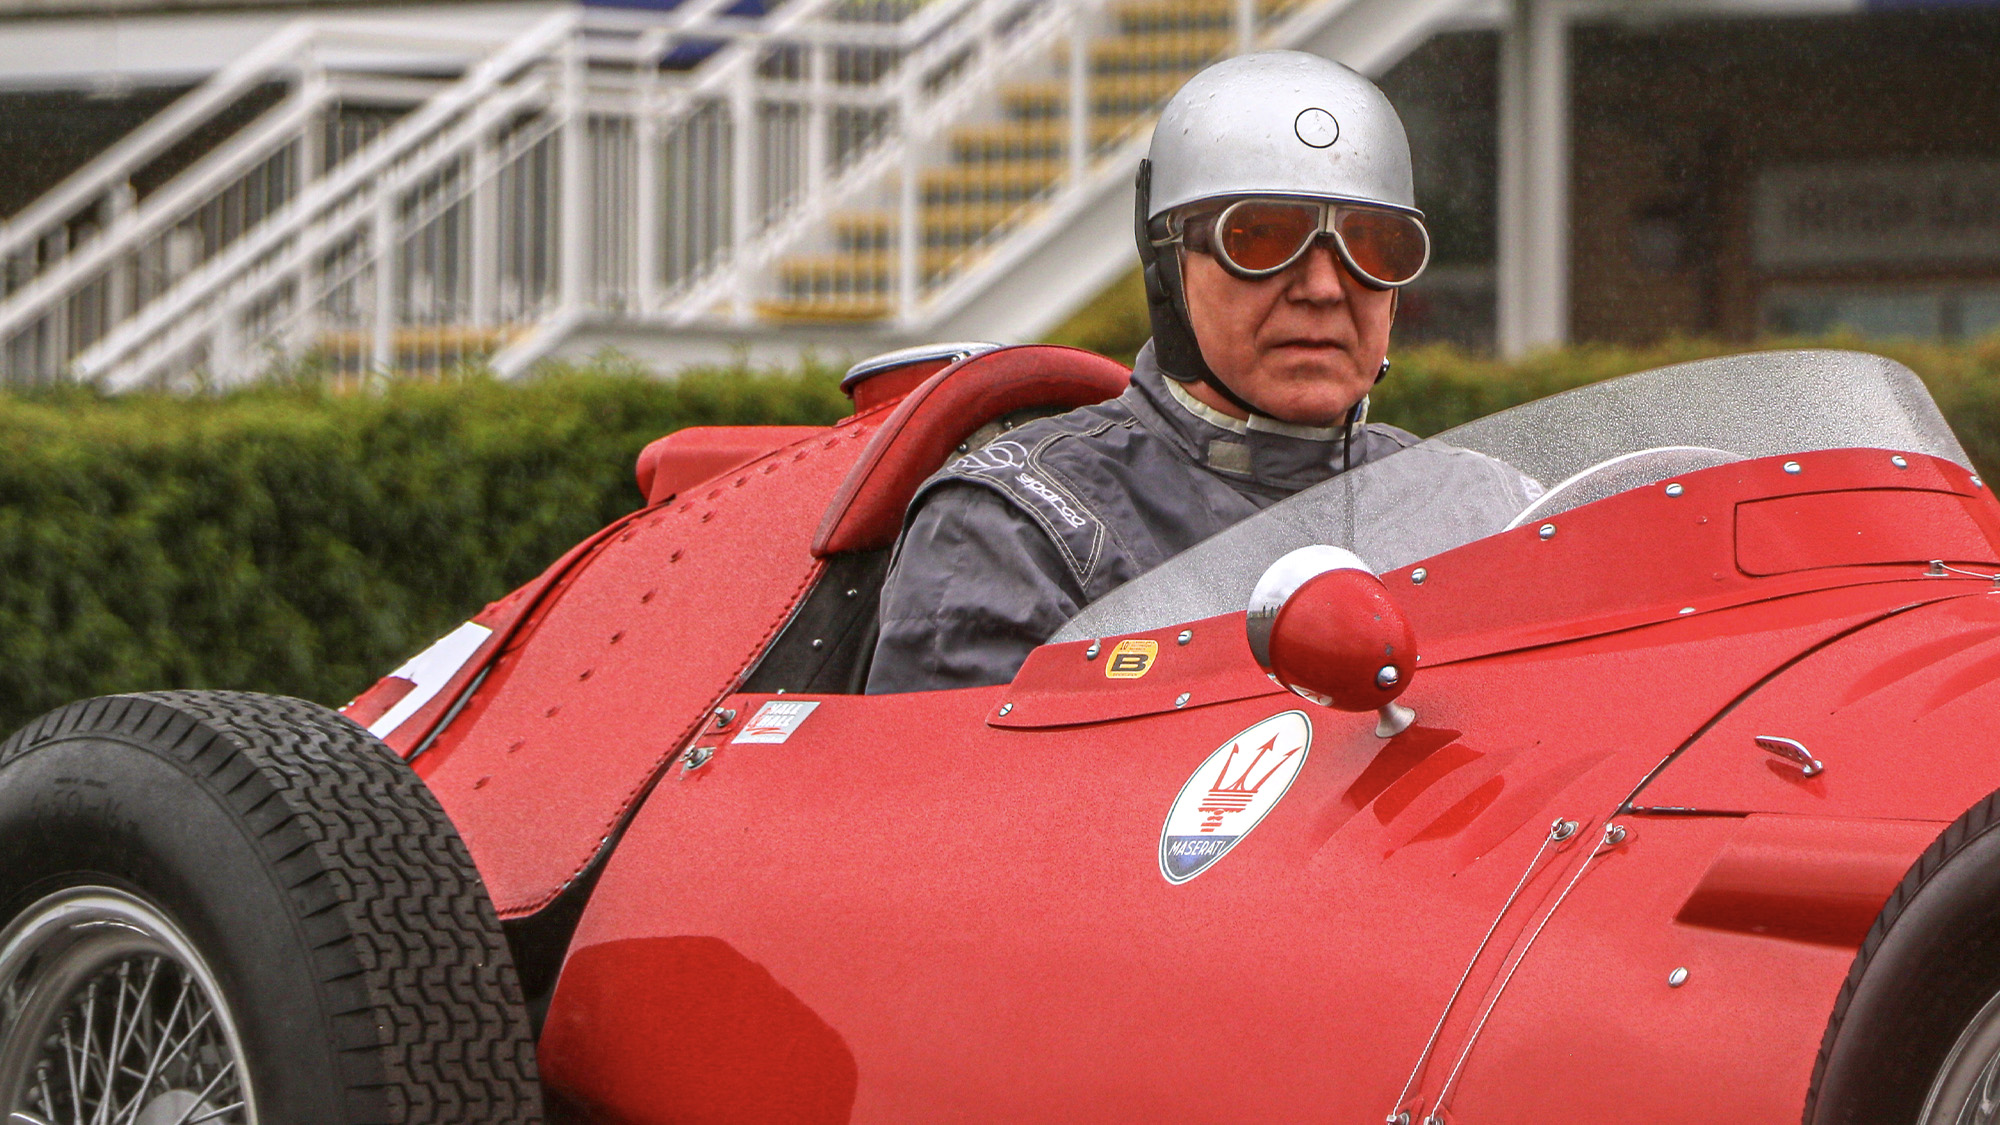 Rick Hall wearing Juan Manuel Fangio's goggles worn in the 1955 British Grand Prix at Aintree